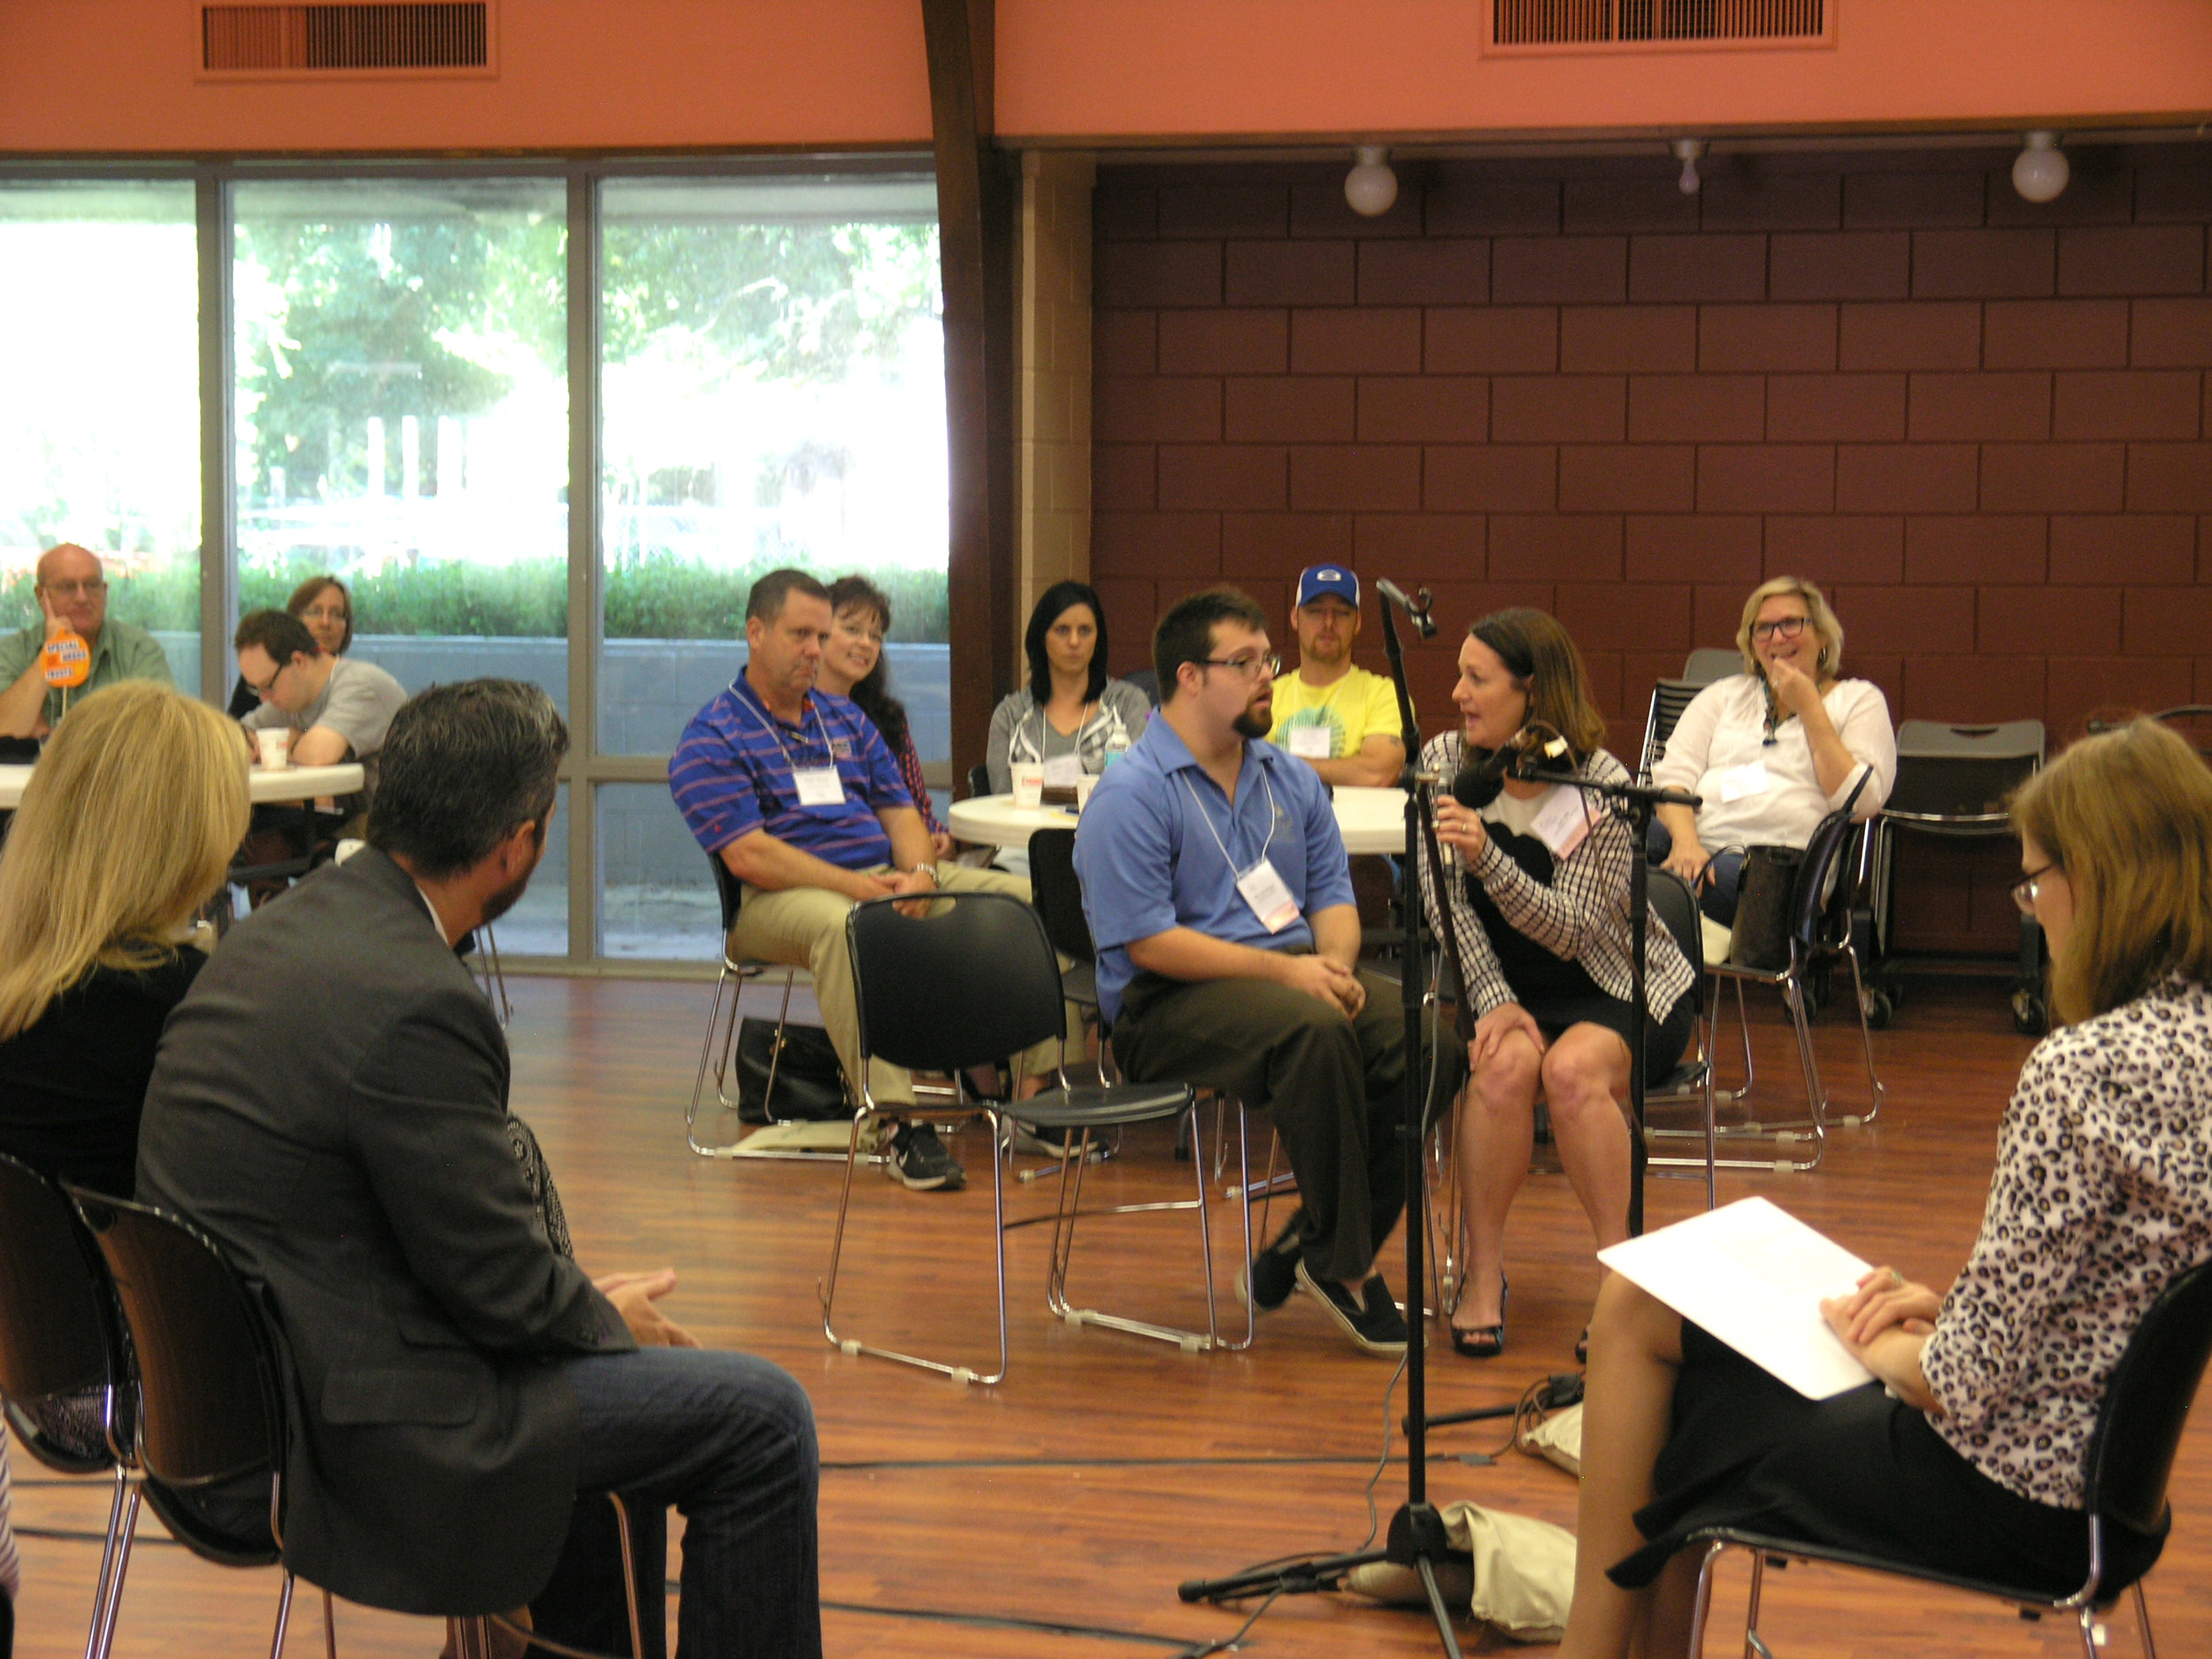 Central Florida Attorneys conduct a Mock Guardianship Hearing to explain the process to families.